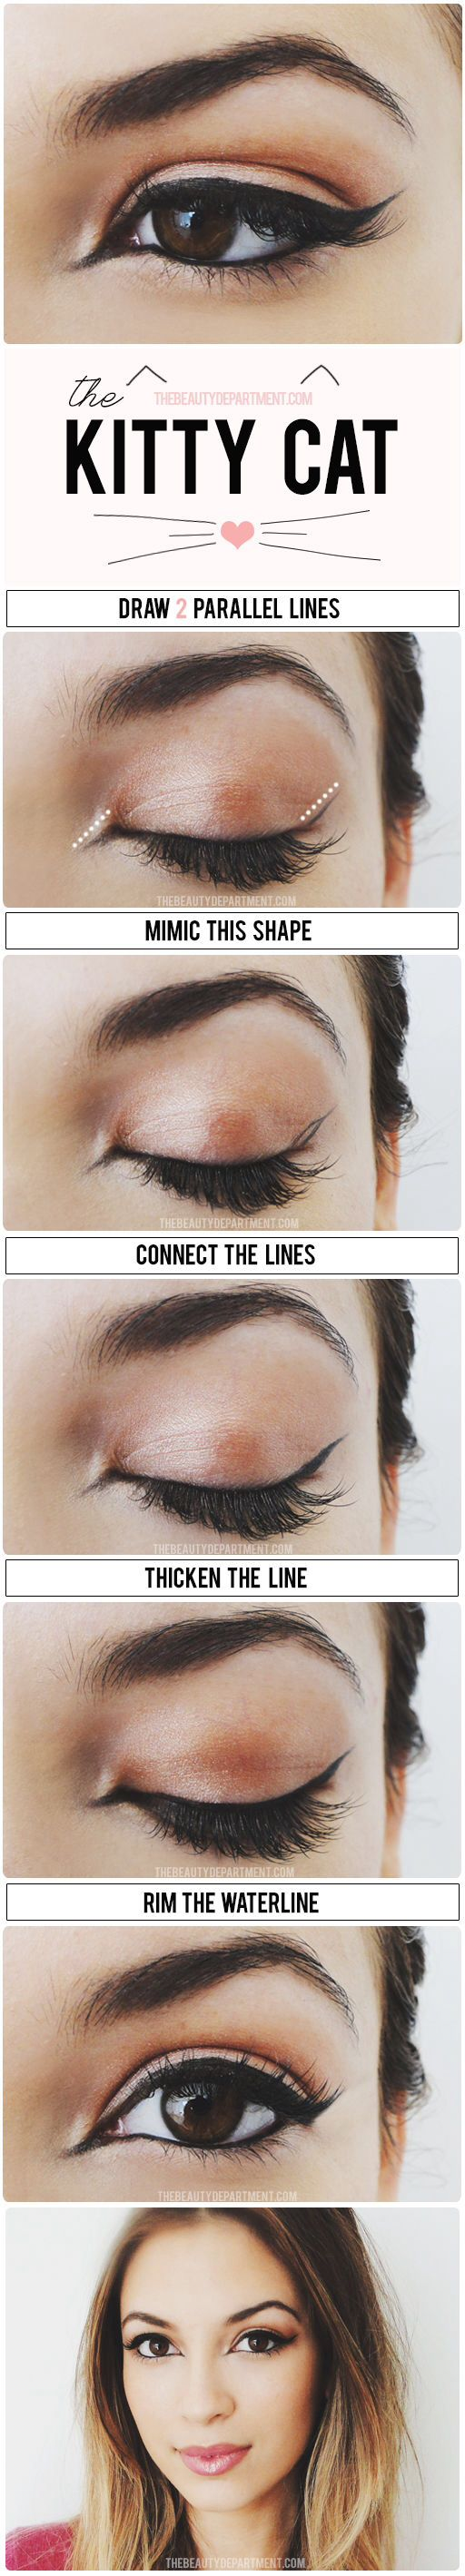 18 unique and fun eyeliner tutorials you need to try | big, eye